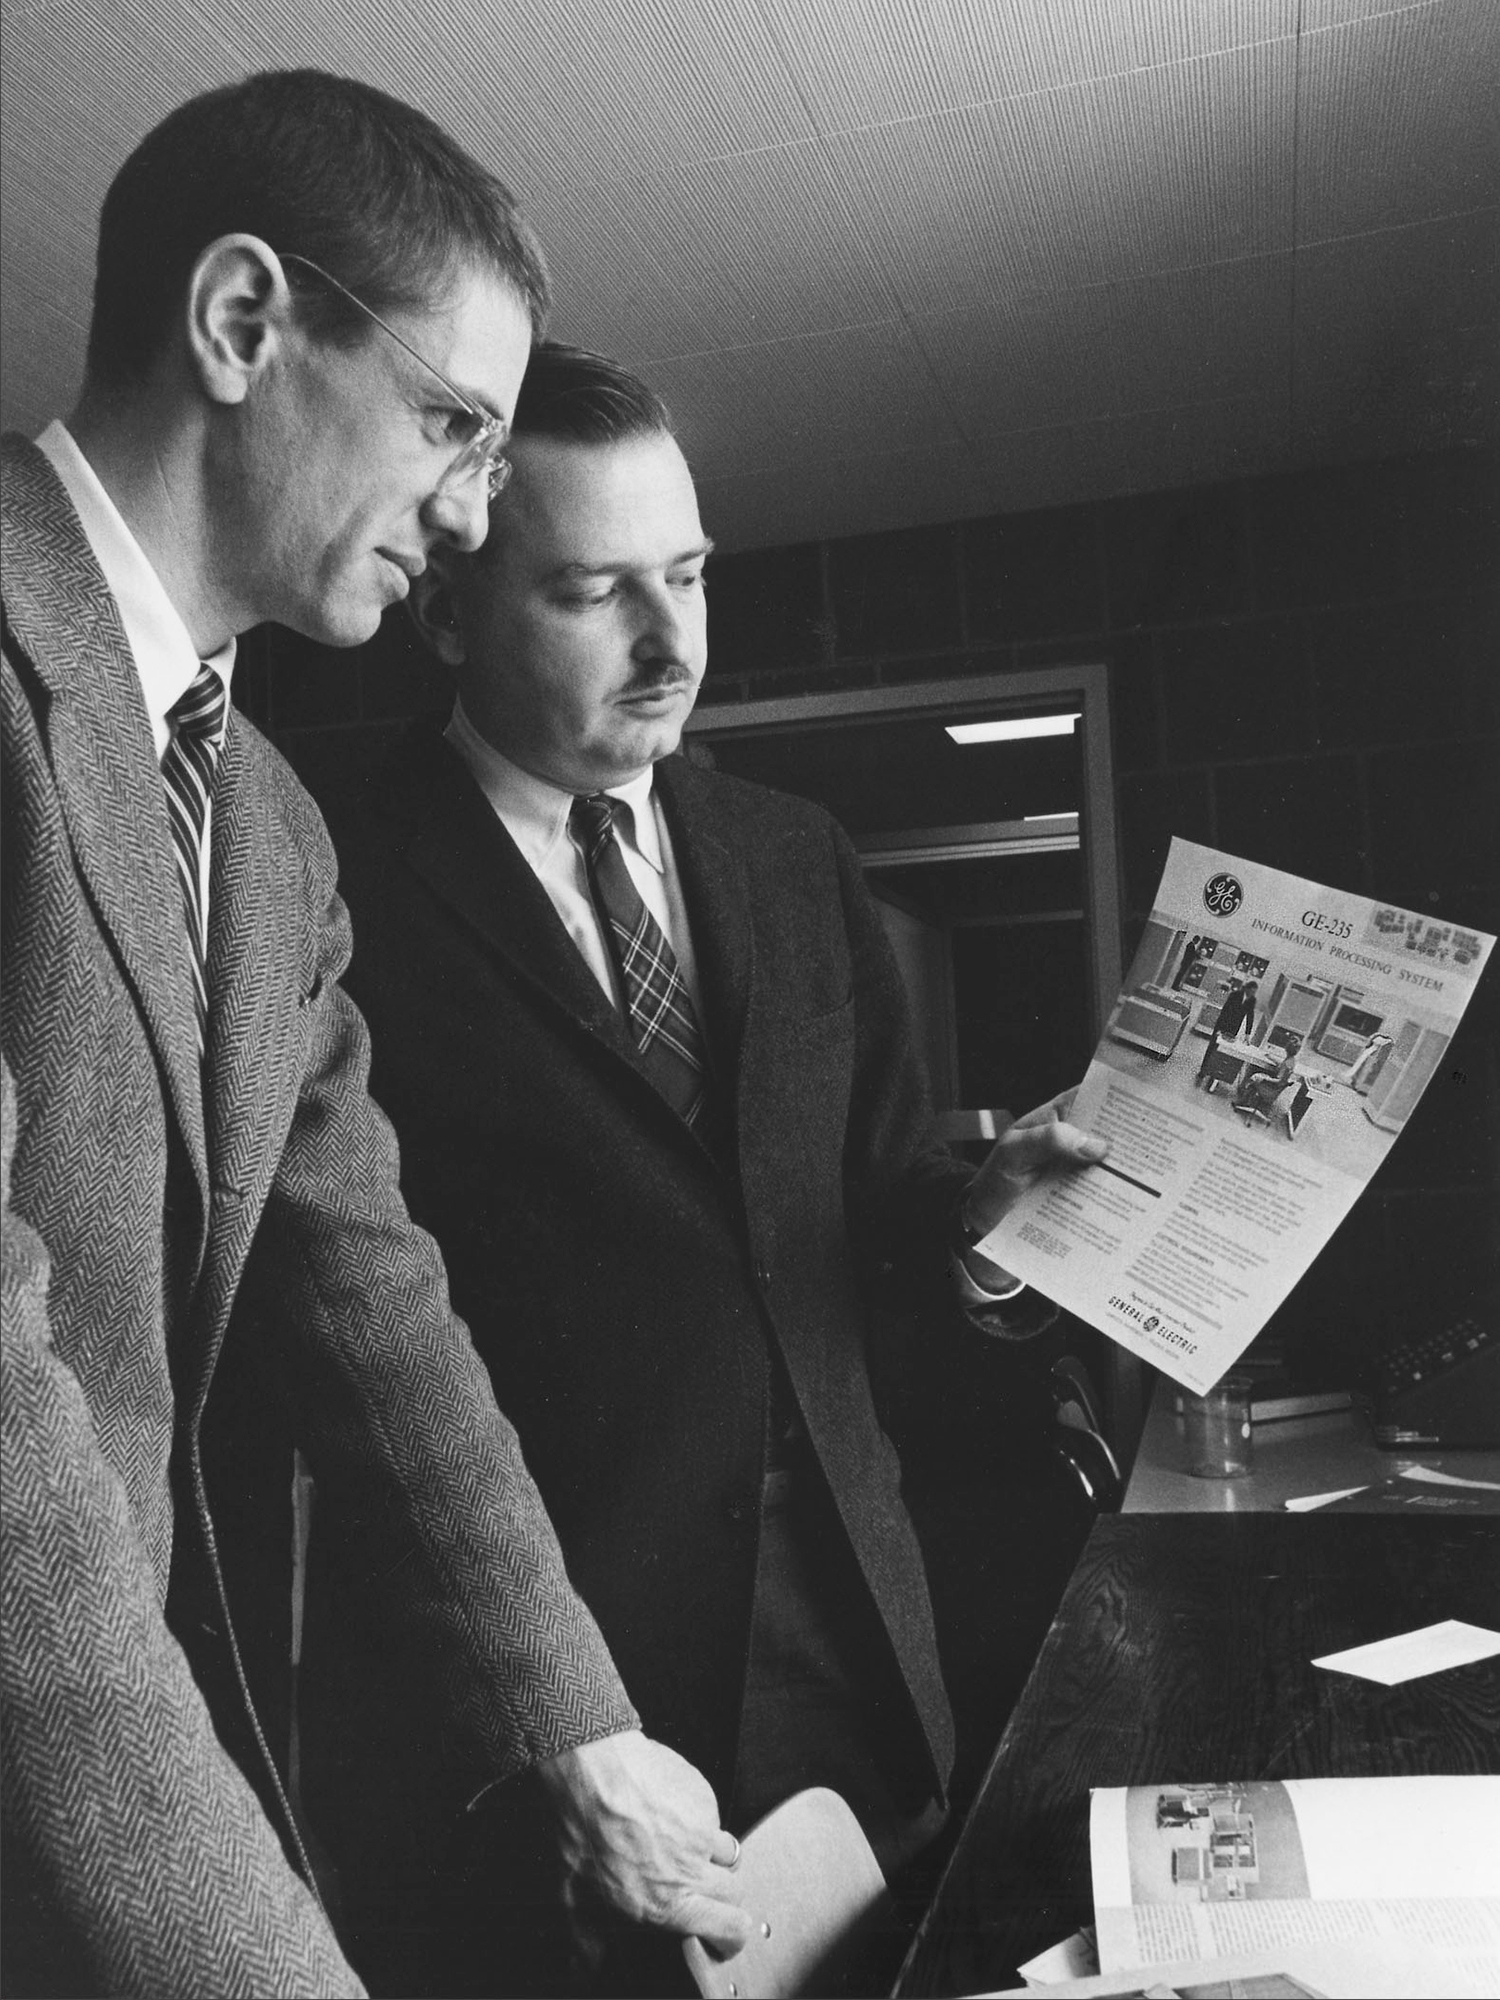 Tom Kurtz and John Kemeny examine a brochure for the GE-225 mainframe computer that powered the initial version of Dartmouth's time-sharing system